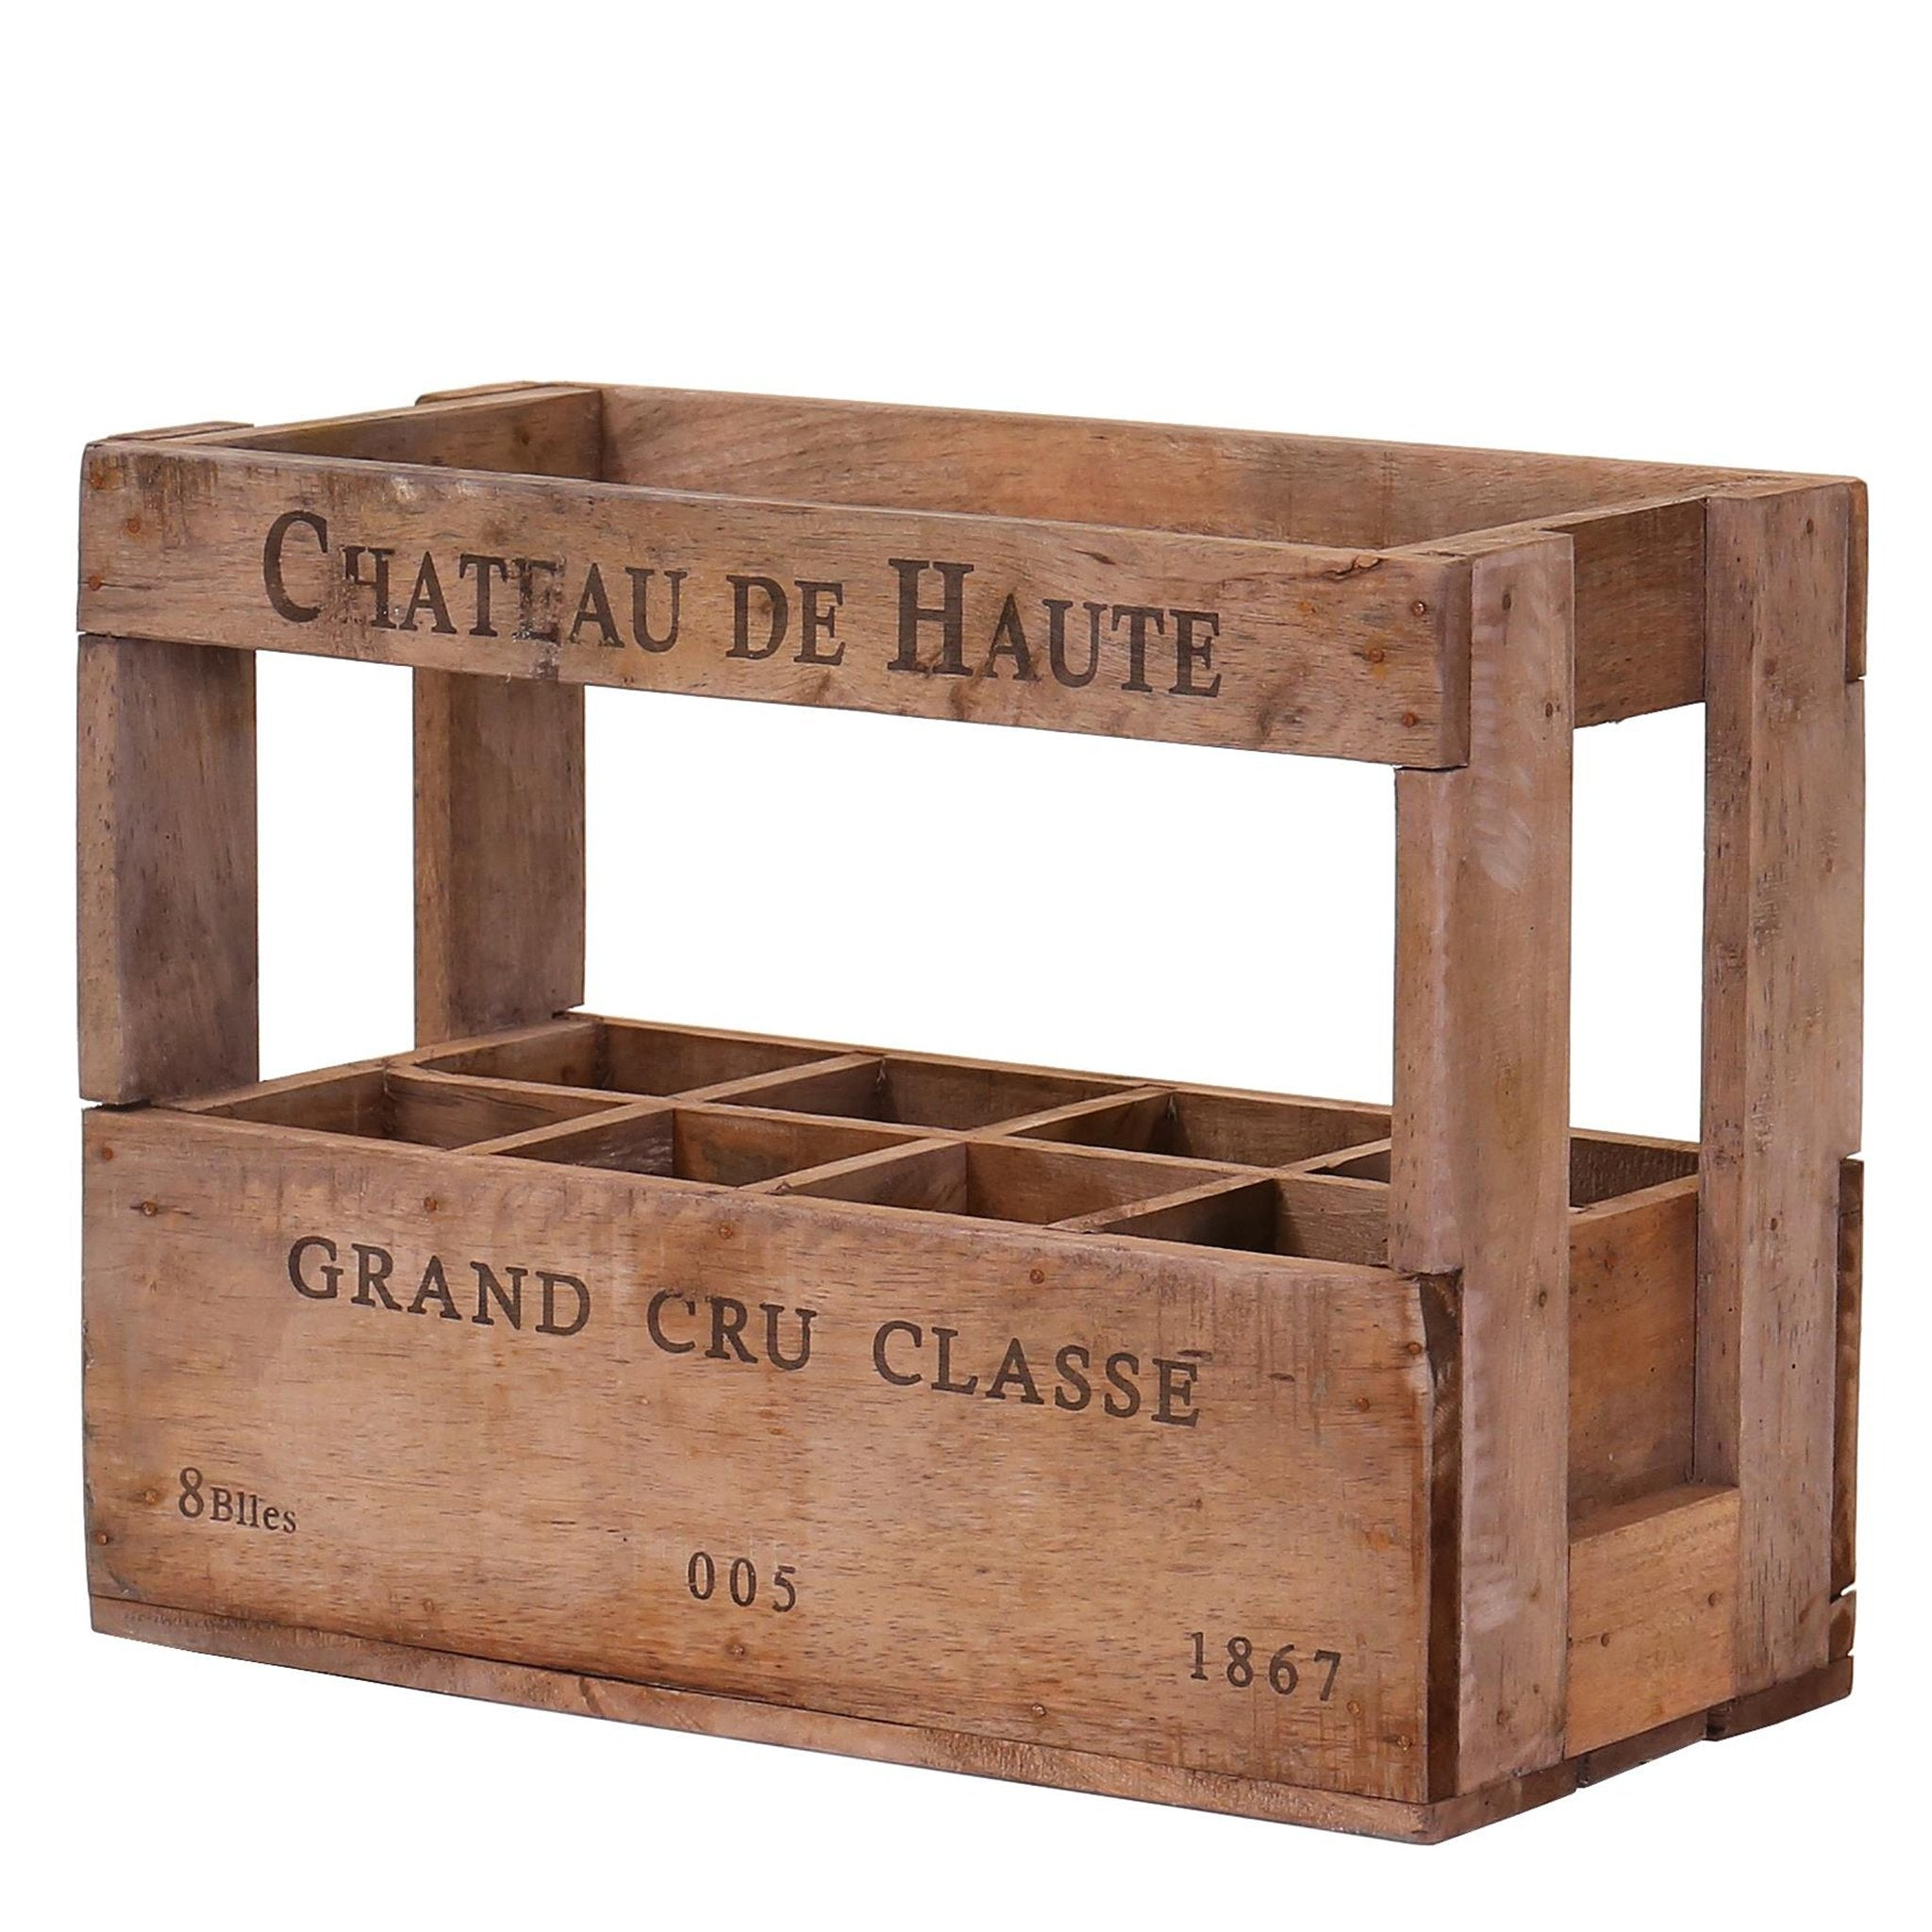 8 Bottle Vintage Wine Crate - Chateau De Haute